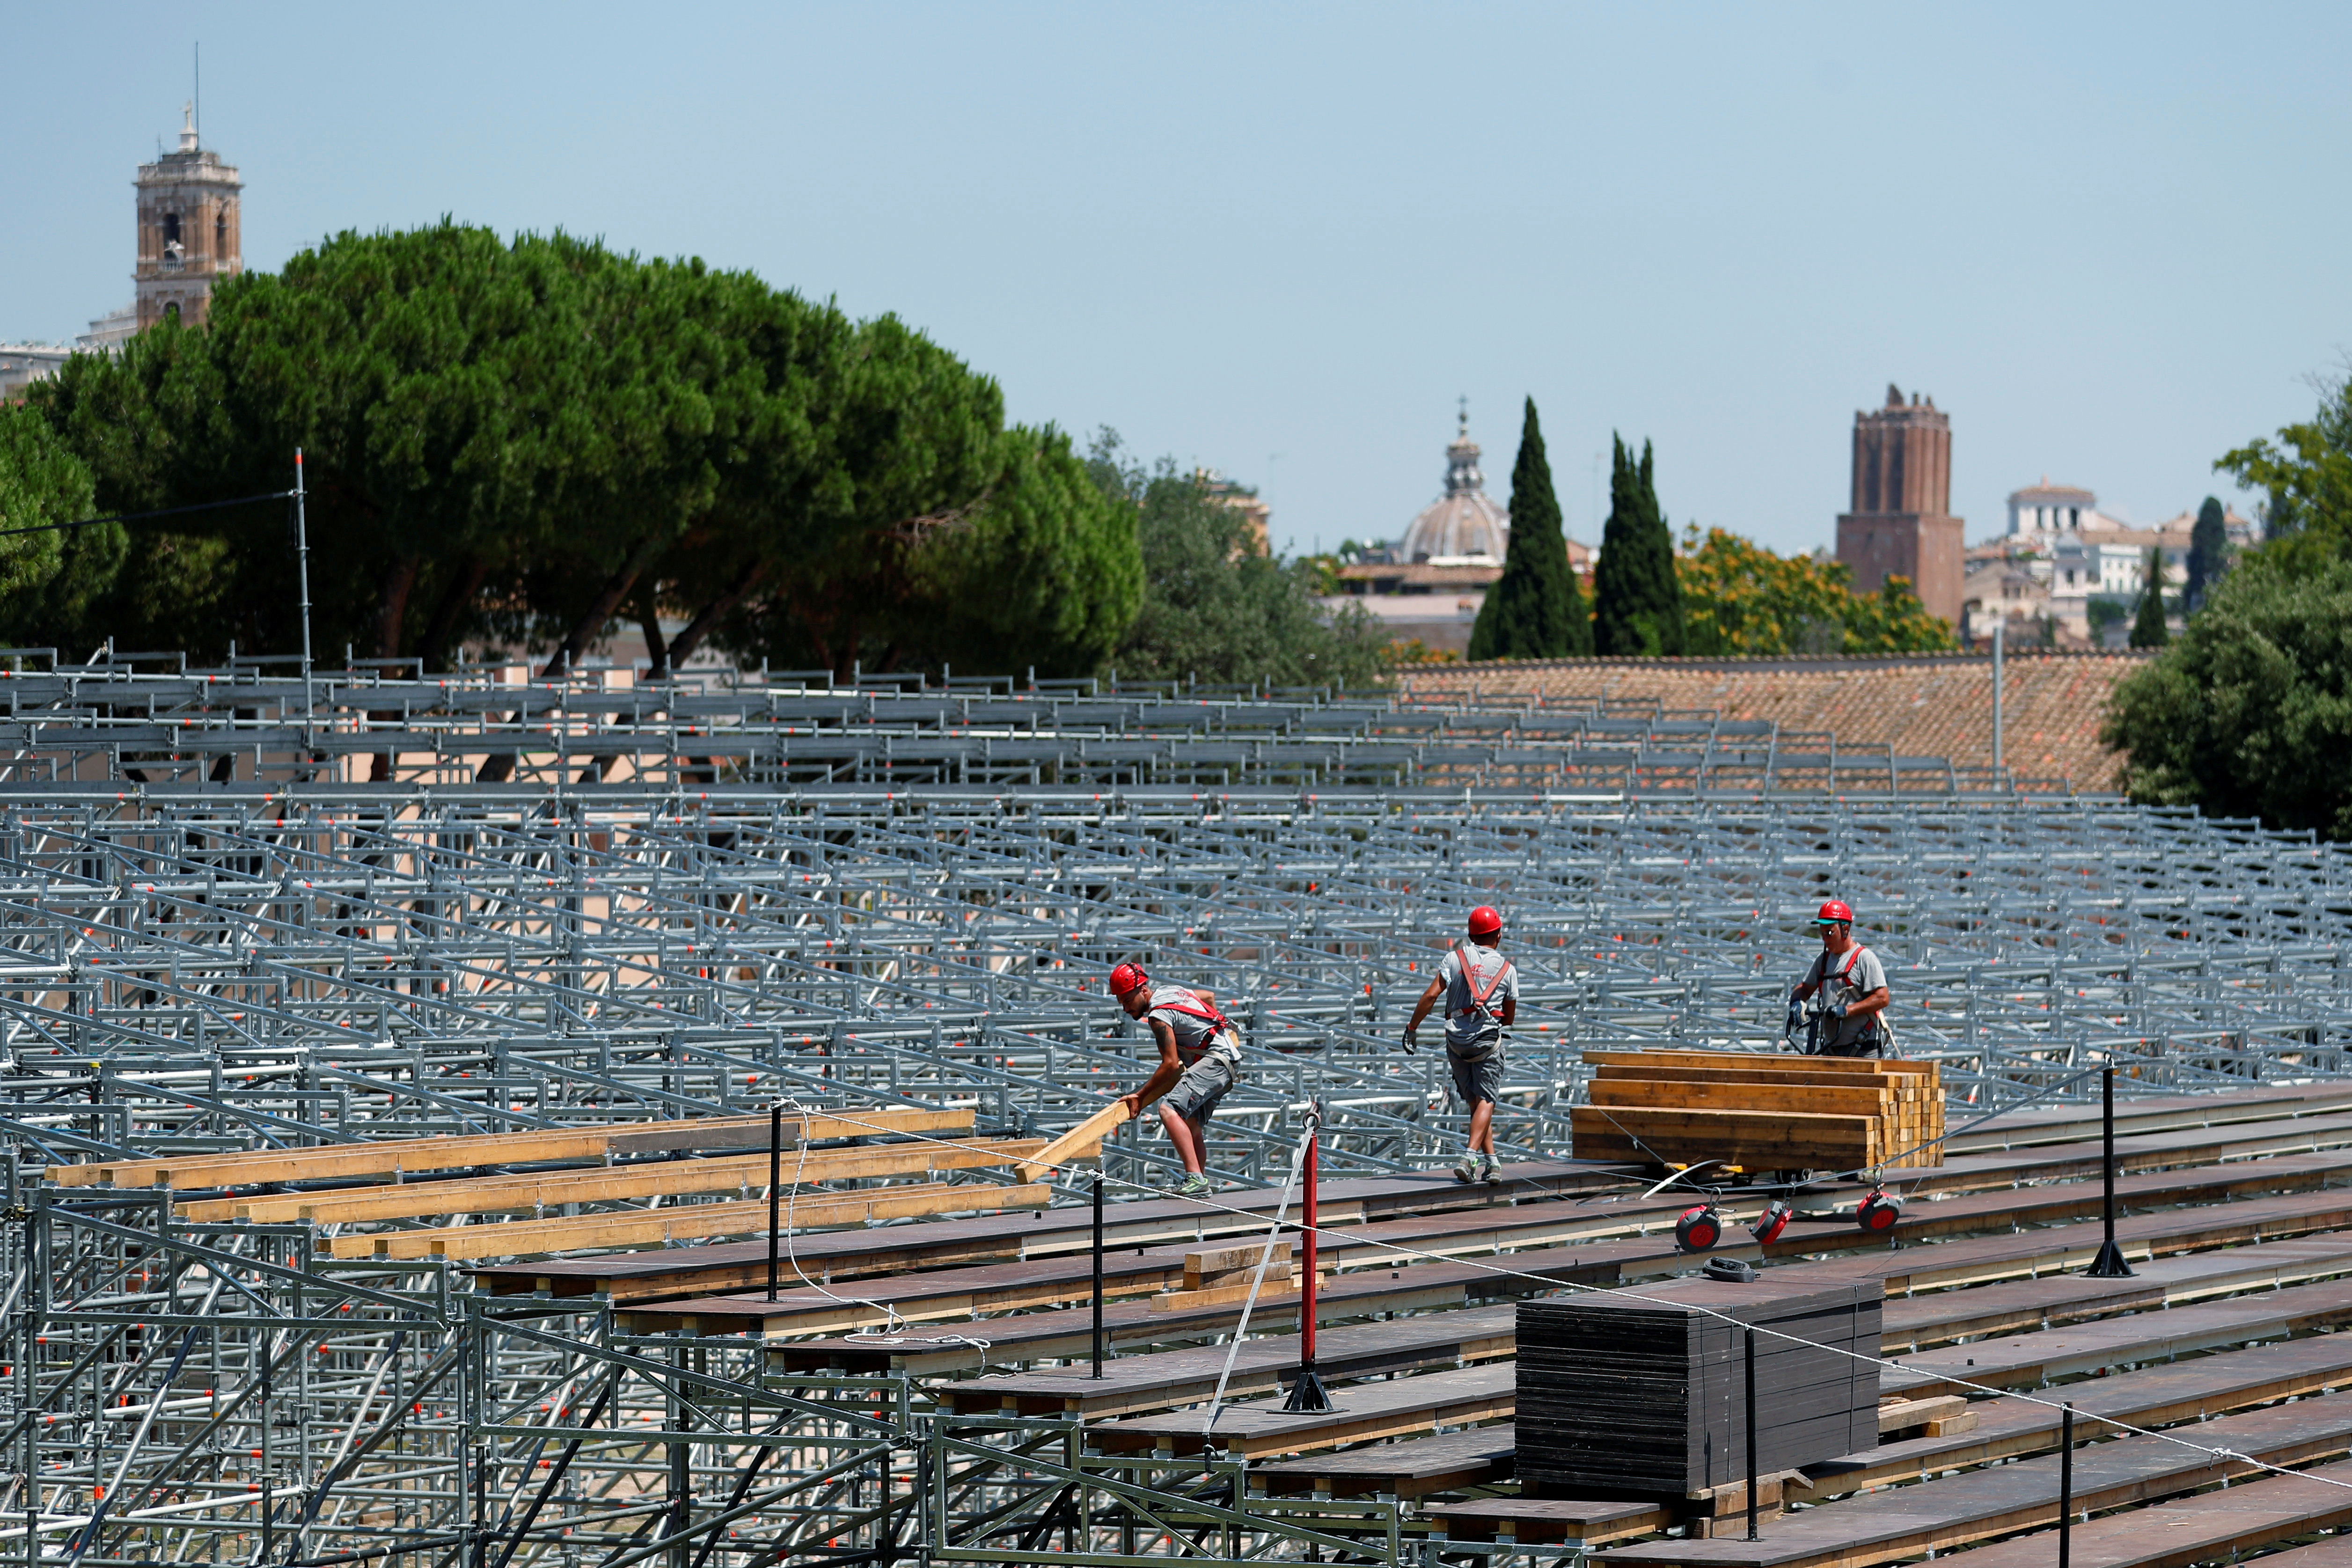 Workers build a seating area for socially distanced Rome Opera House's summer performances at Circus Maximus, the ancient chariot racetrack, following the coronavirus disease (COVID-19) outbreak in Rome, Italy, June 25, 2020. Picture taken June 25, 2020. REUTERS/Guglielmo Mangiapane - RC2BSH9A8NIX